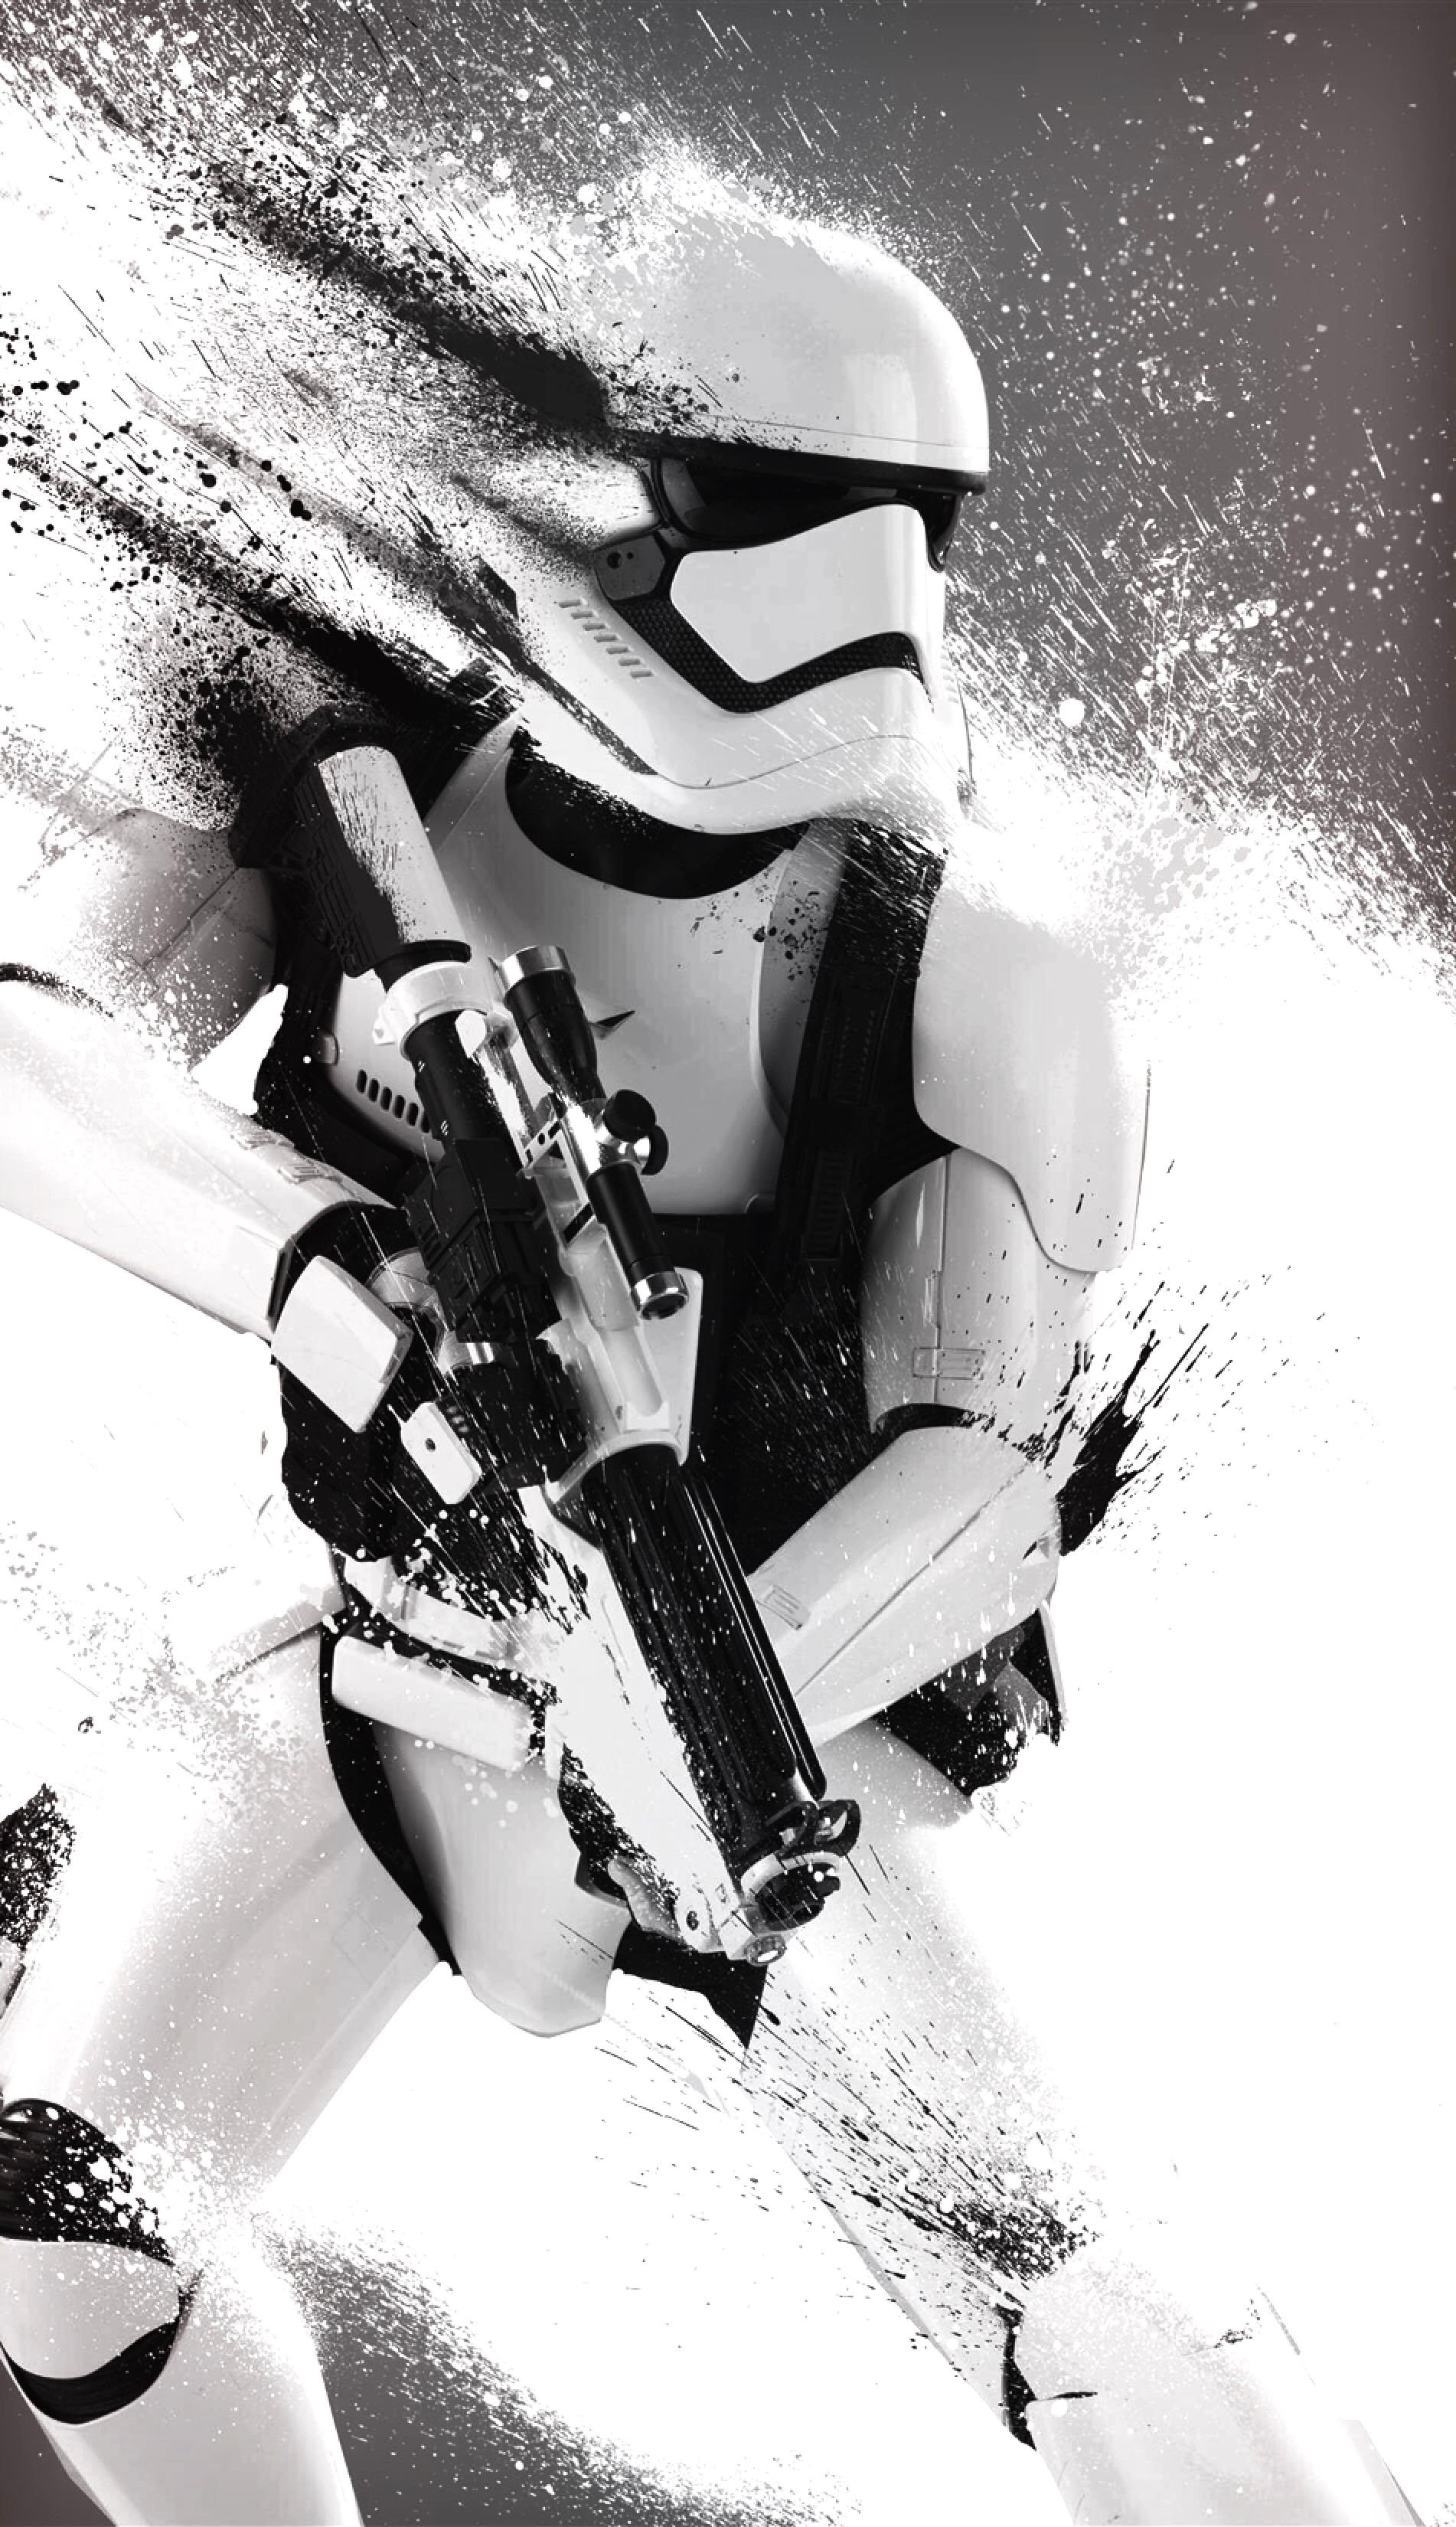 146 The First Order